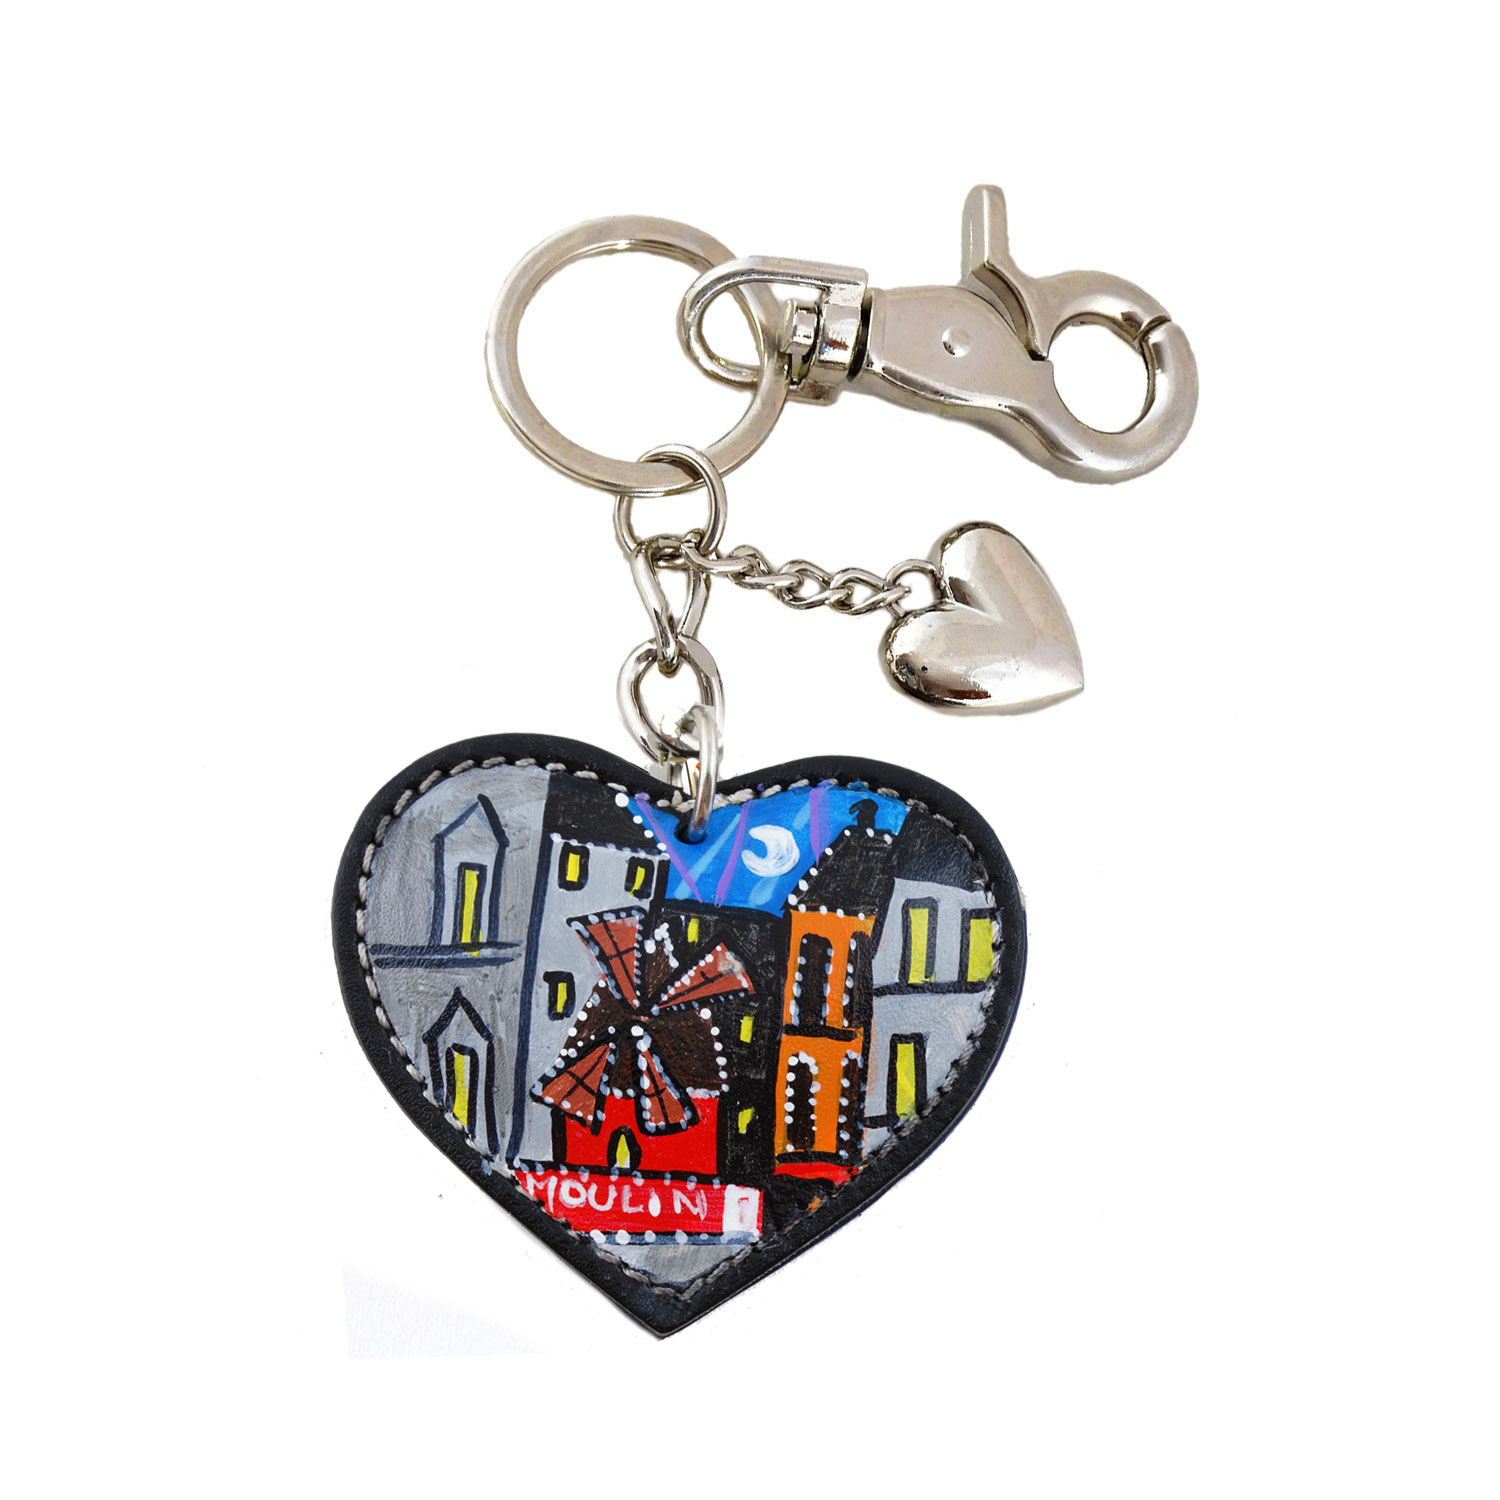 Hand painted keychain – Moulin Rouge